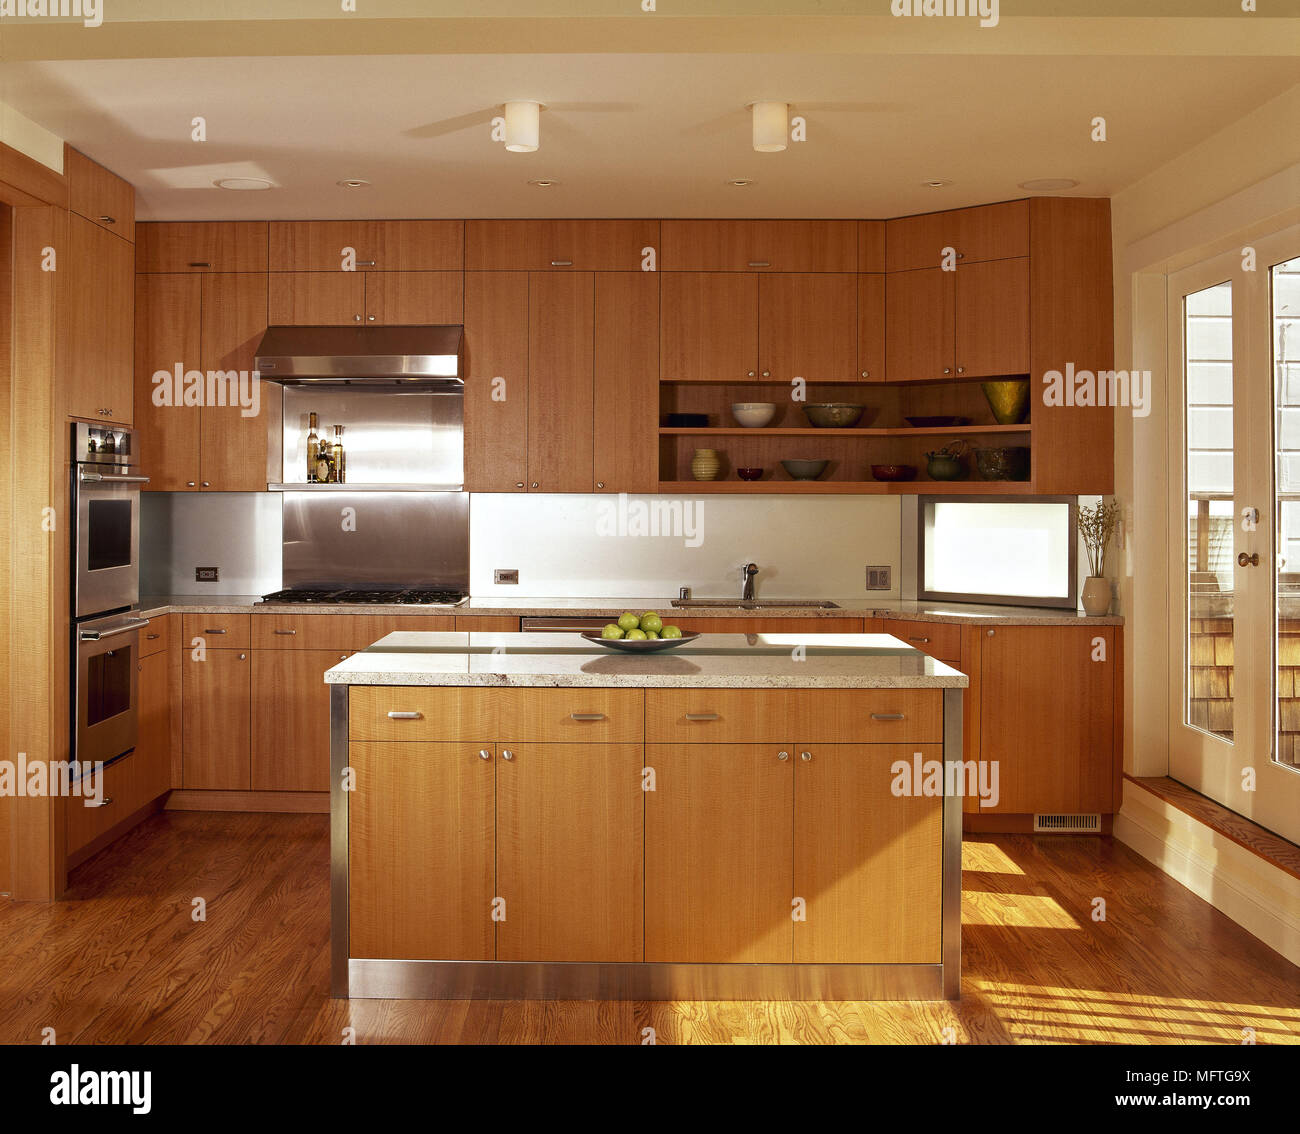 Modern Minimalist Kitchen Central Island Unit Wood Units